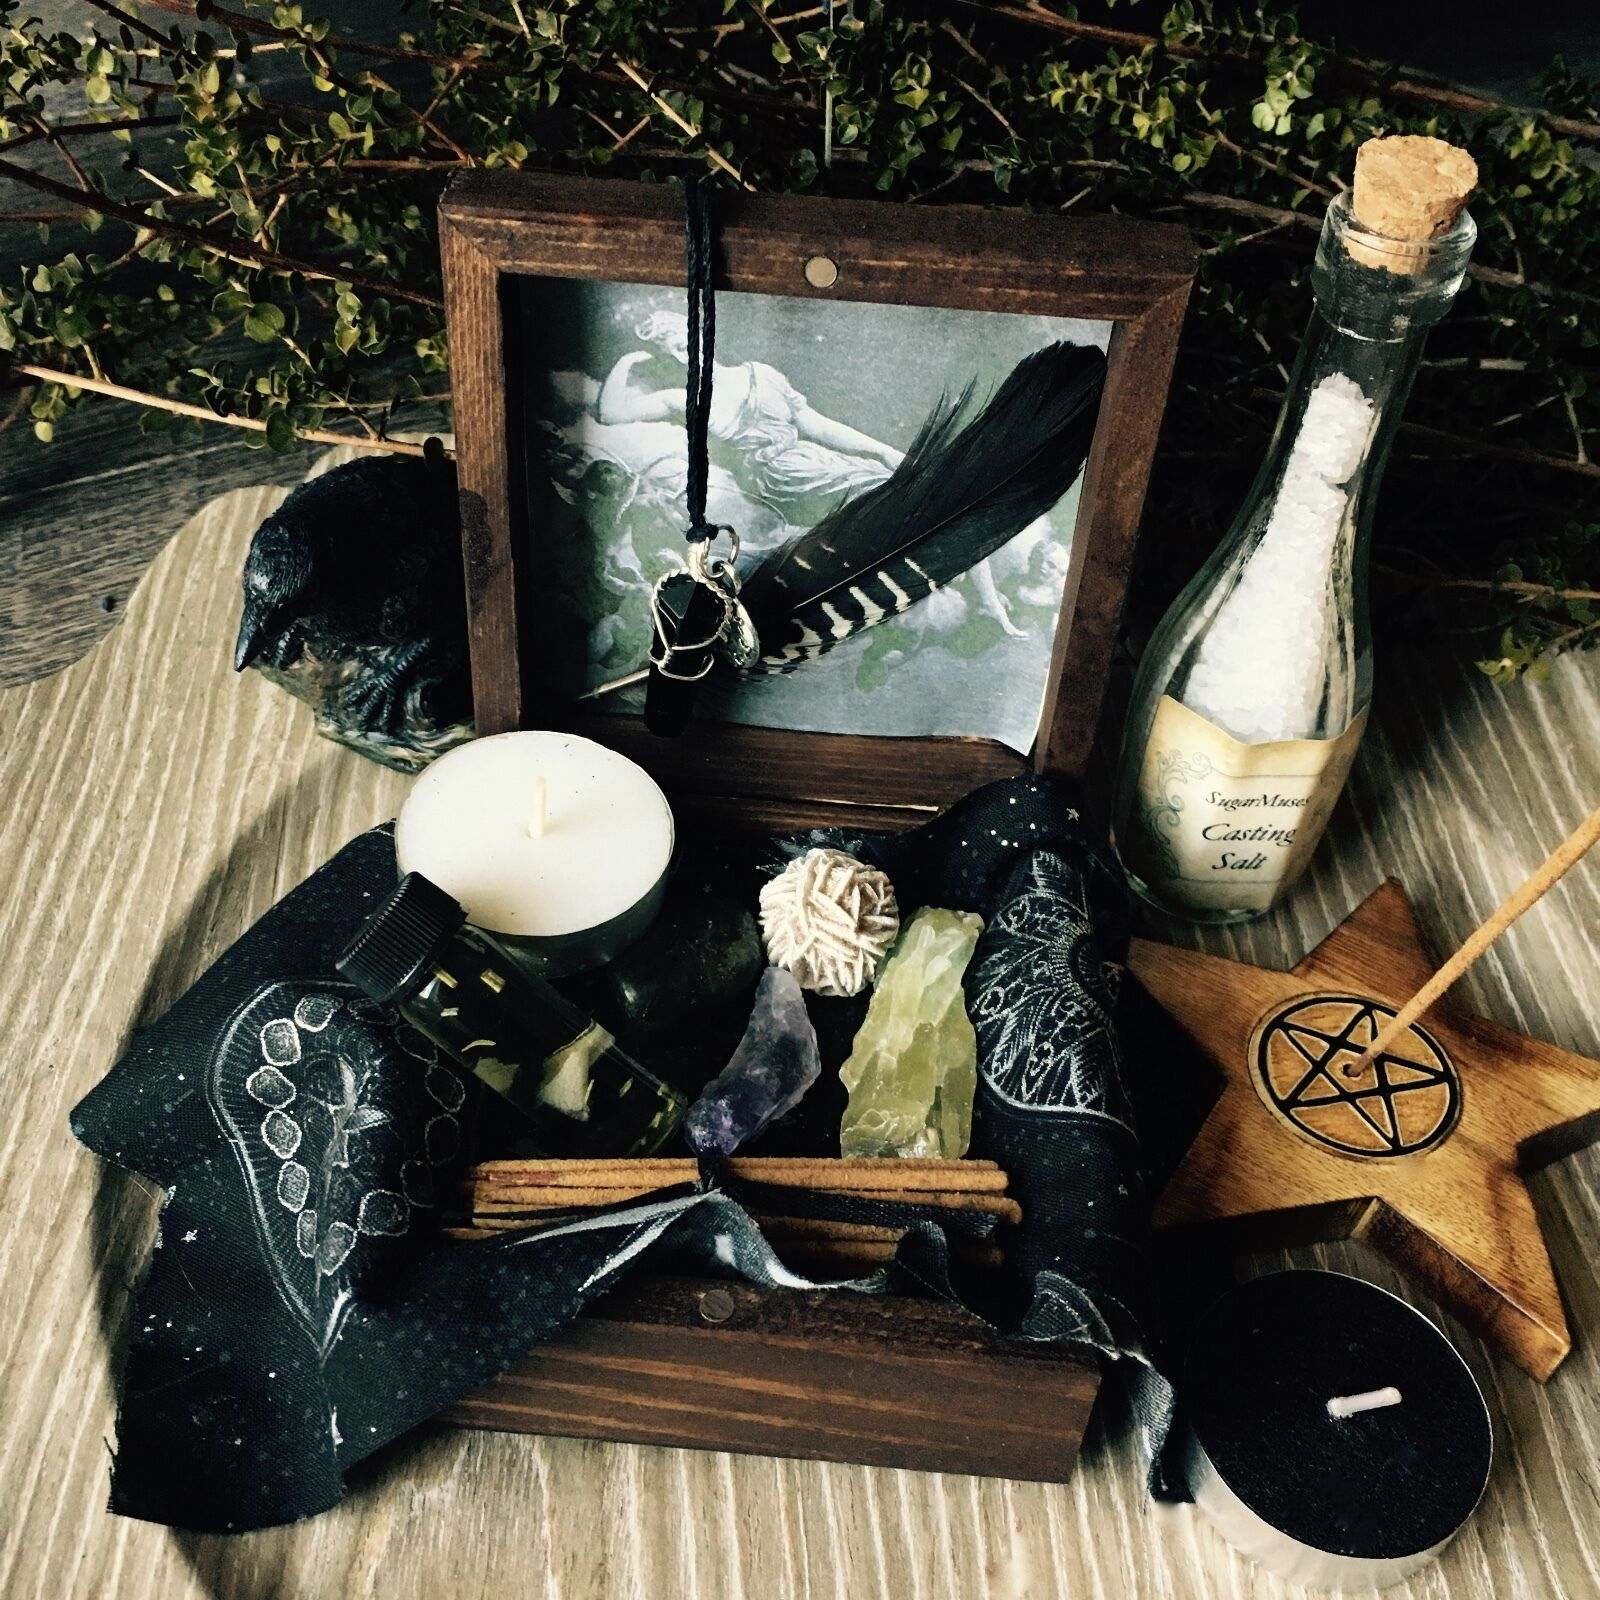 Witch Box Wicca Pagan Goddess Trinket box Altar Supplies Spell Kit ©SugarMuses